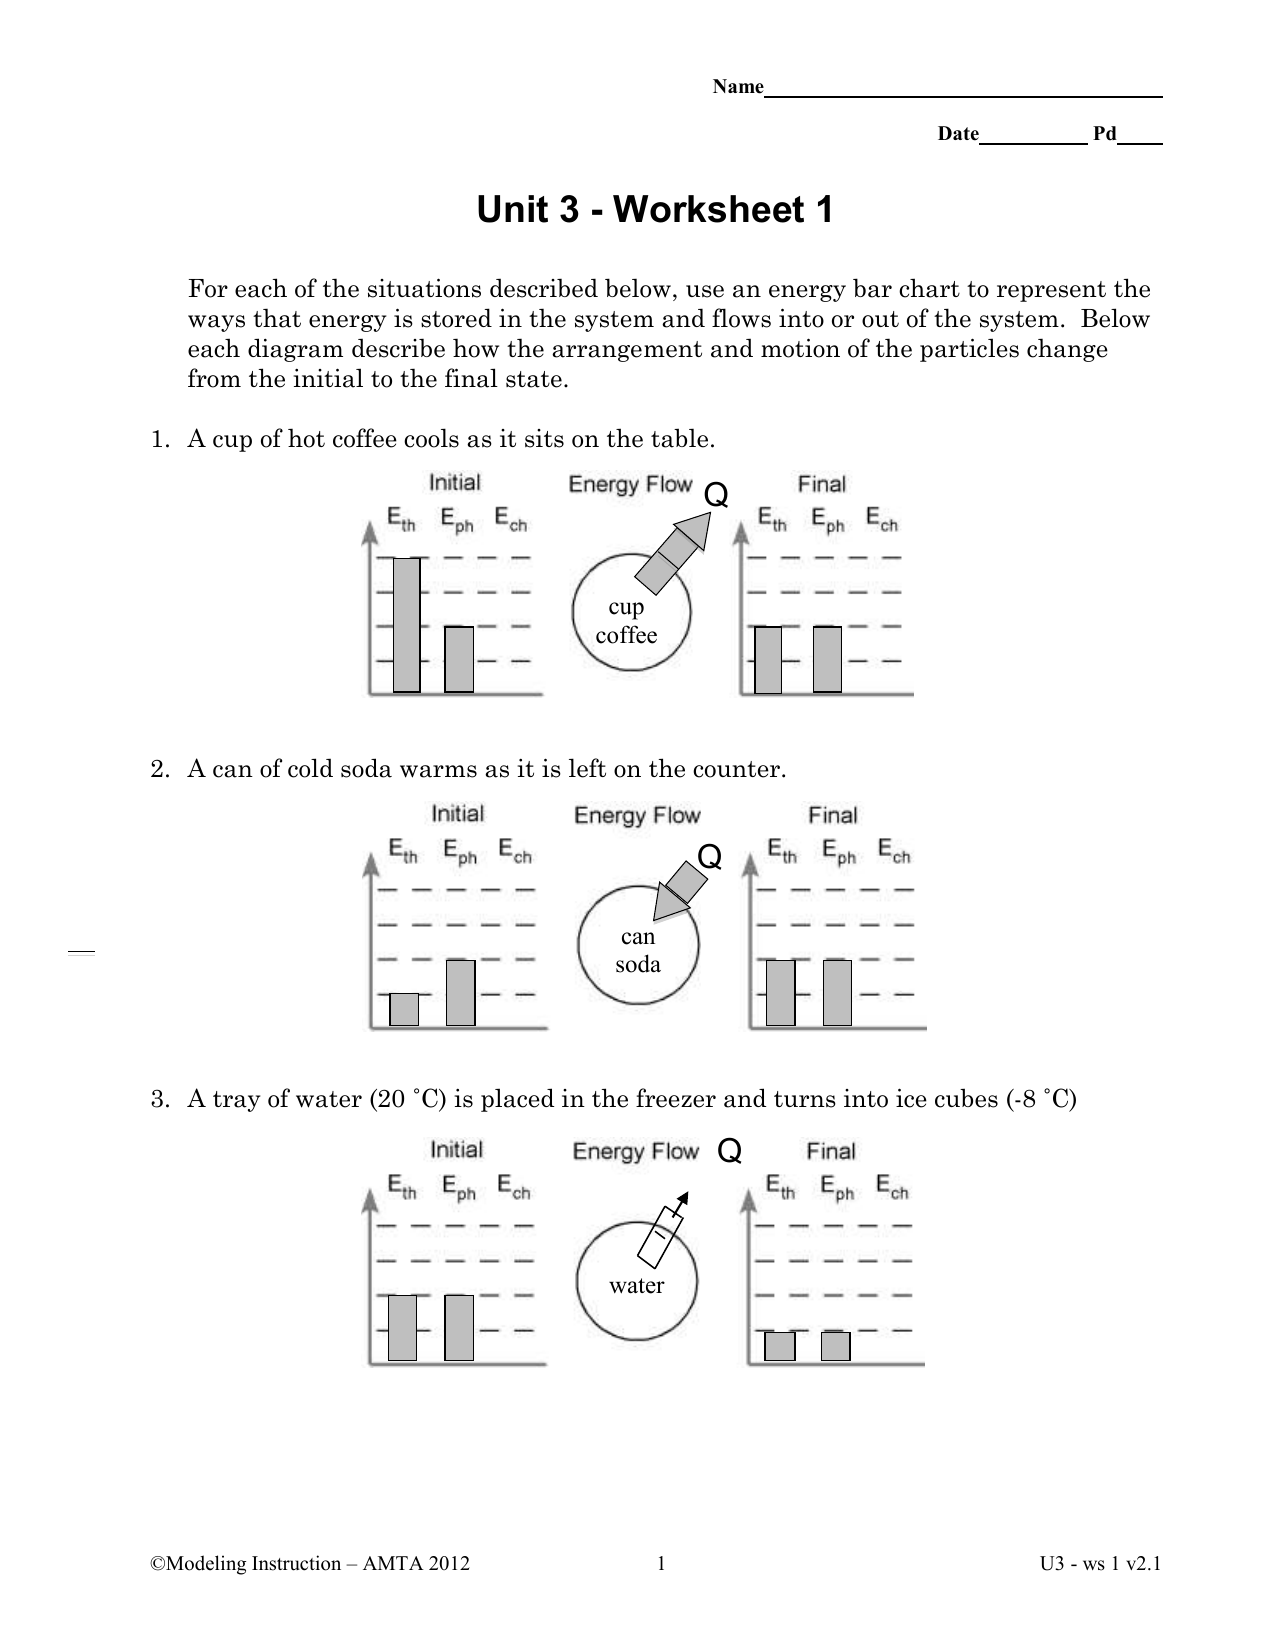 Chemistry unit 3 worksheet 4 quantitative energy problems answers